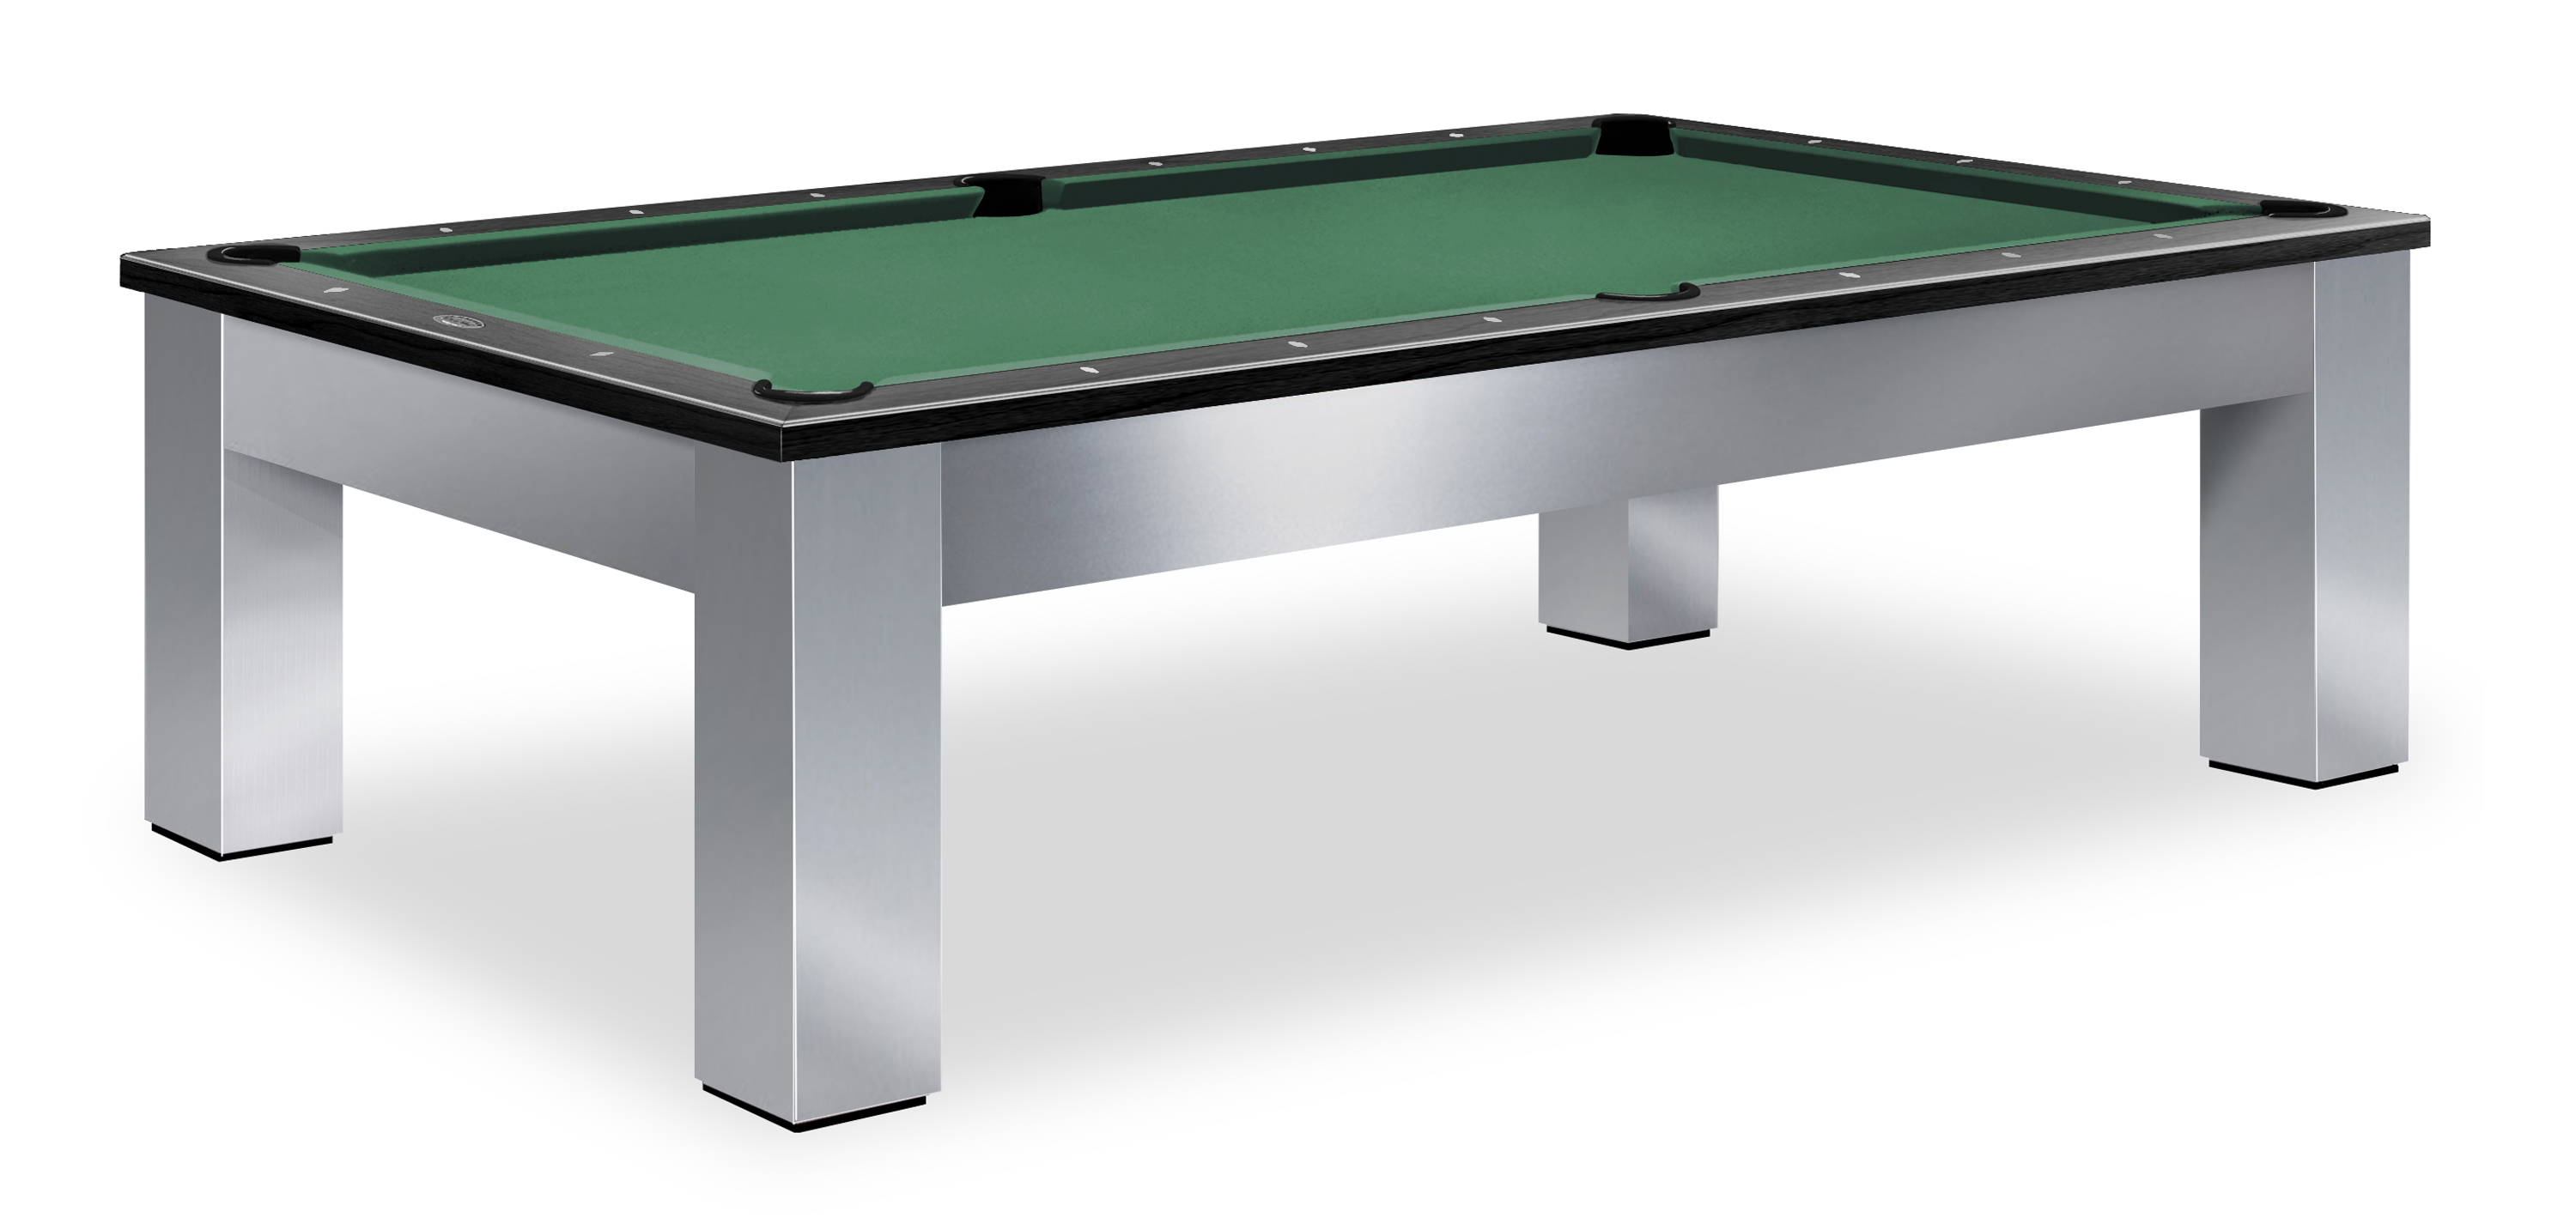 pool one billiards madison table tables olhausen